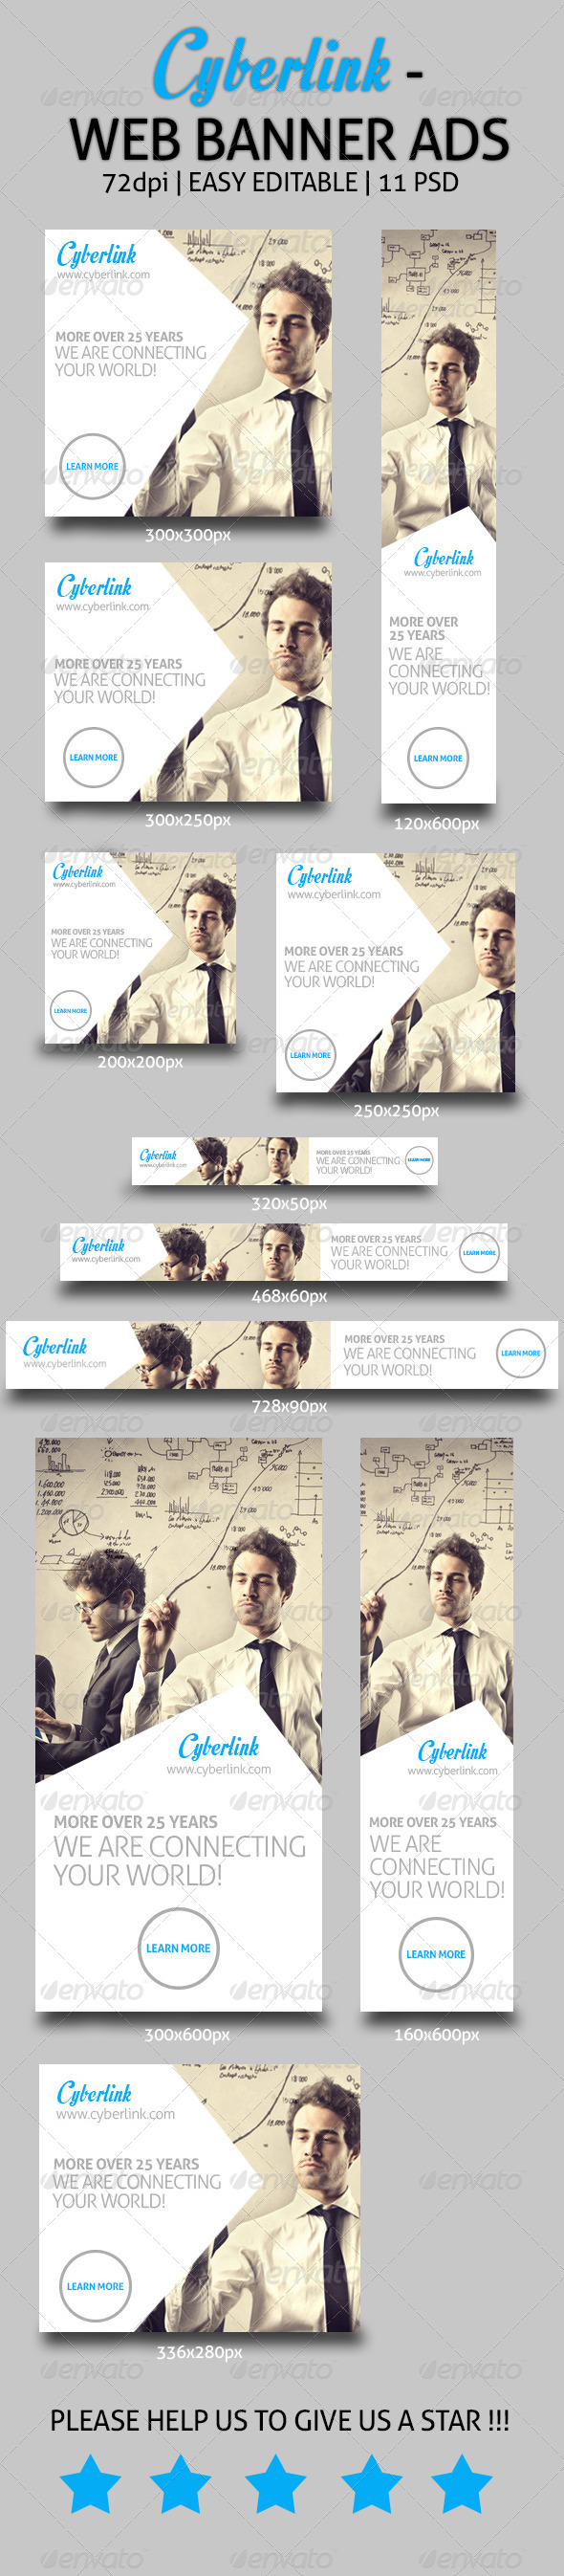 GraphicRiver Cyberlink Web Banner Ads 7358087